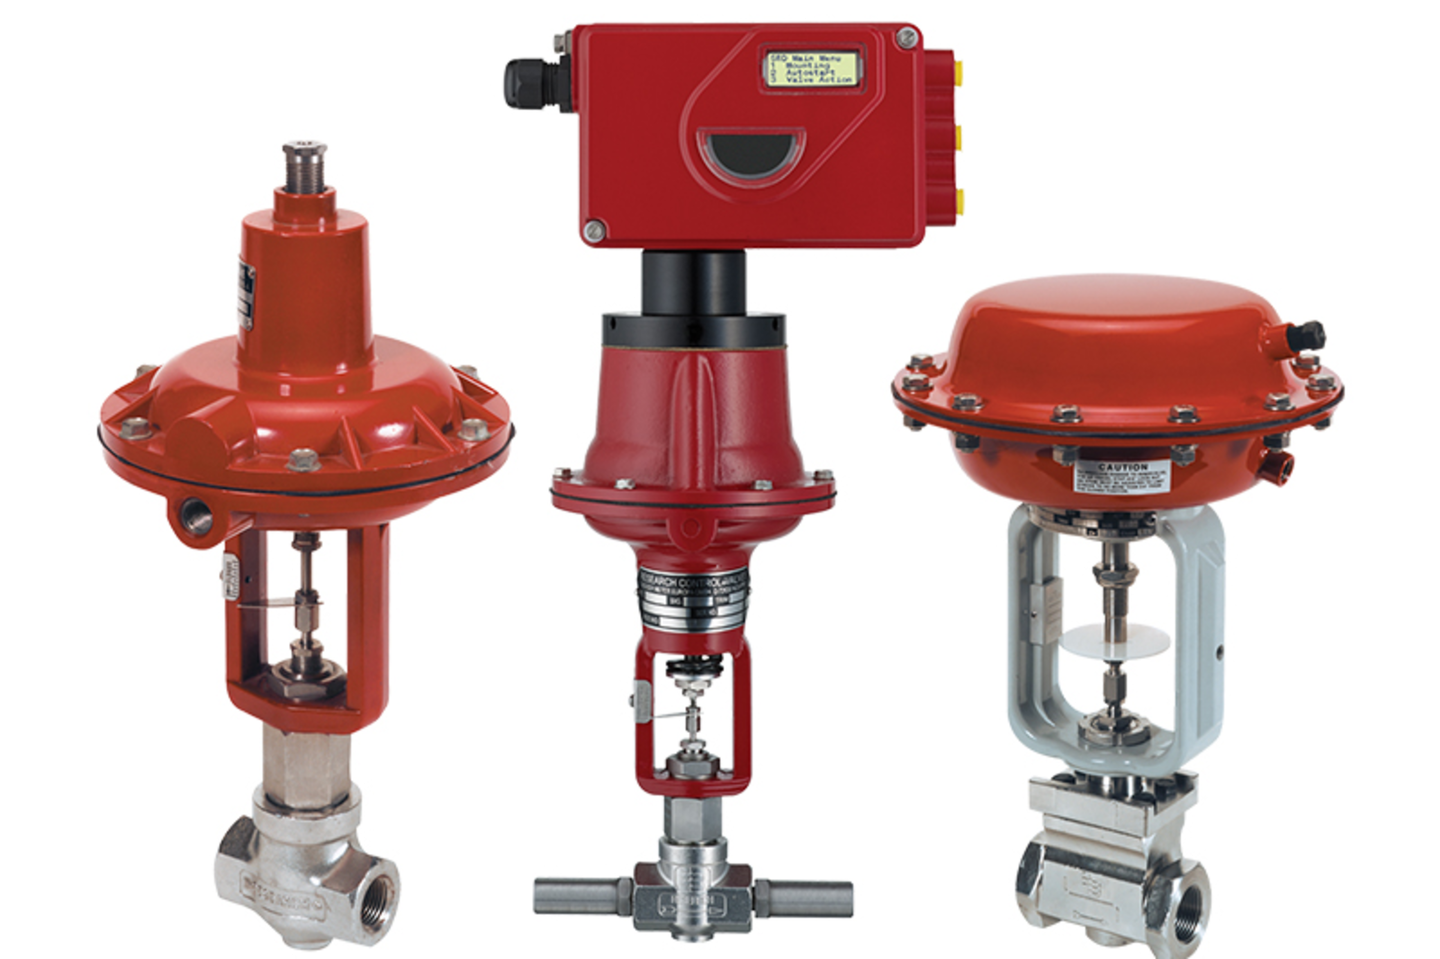 Ongoing developments in smart and digital valve positioners have had a dramatic impact on plant efficiency, overall profitability and asset life cycle costs.